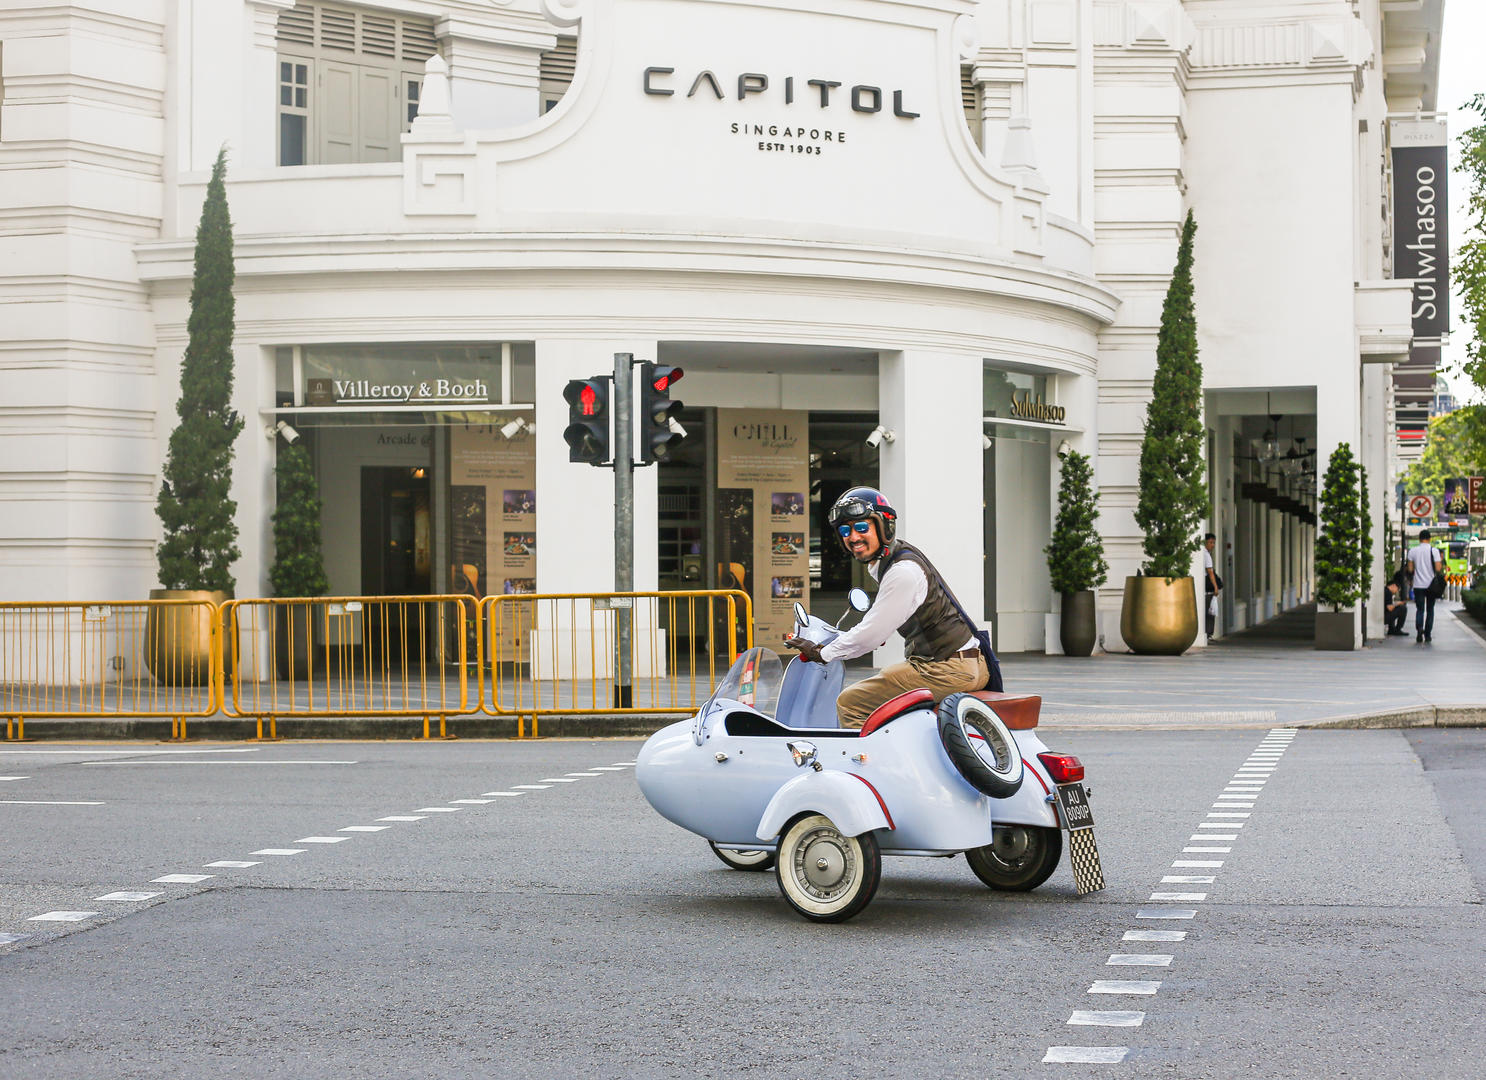 Vintage Sidecar Tour Local Experience by The Capitol Kempinski Hotel Singapore